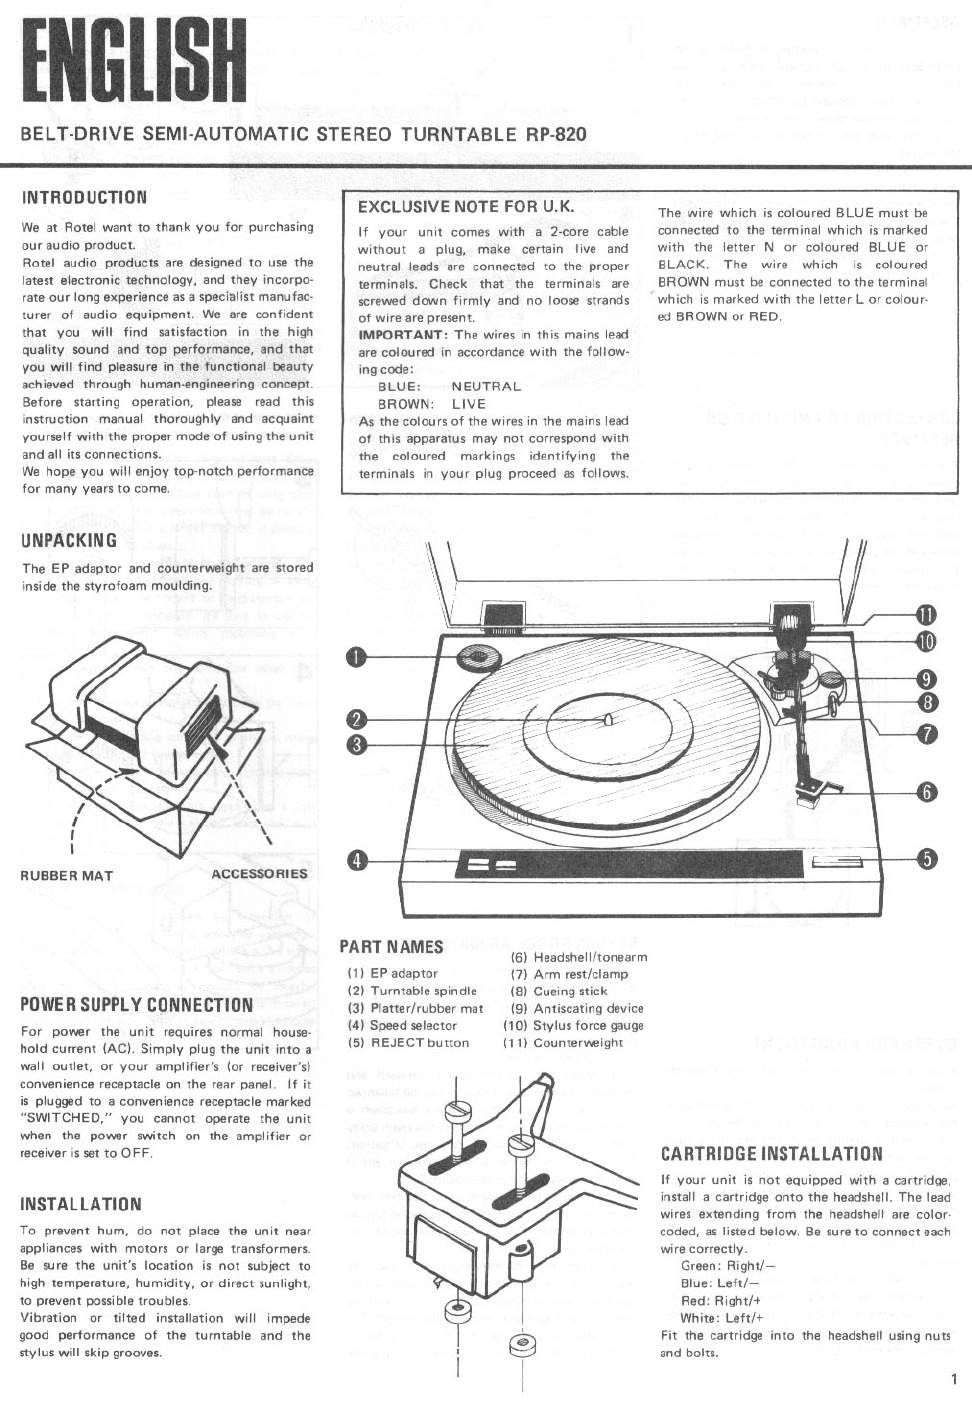 TURNTABLE DRIVE BELT FOR THE ROTEL RP-400